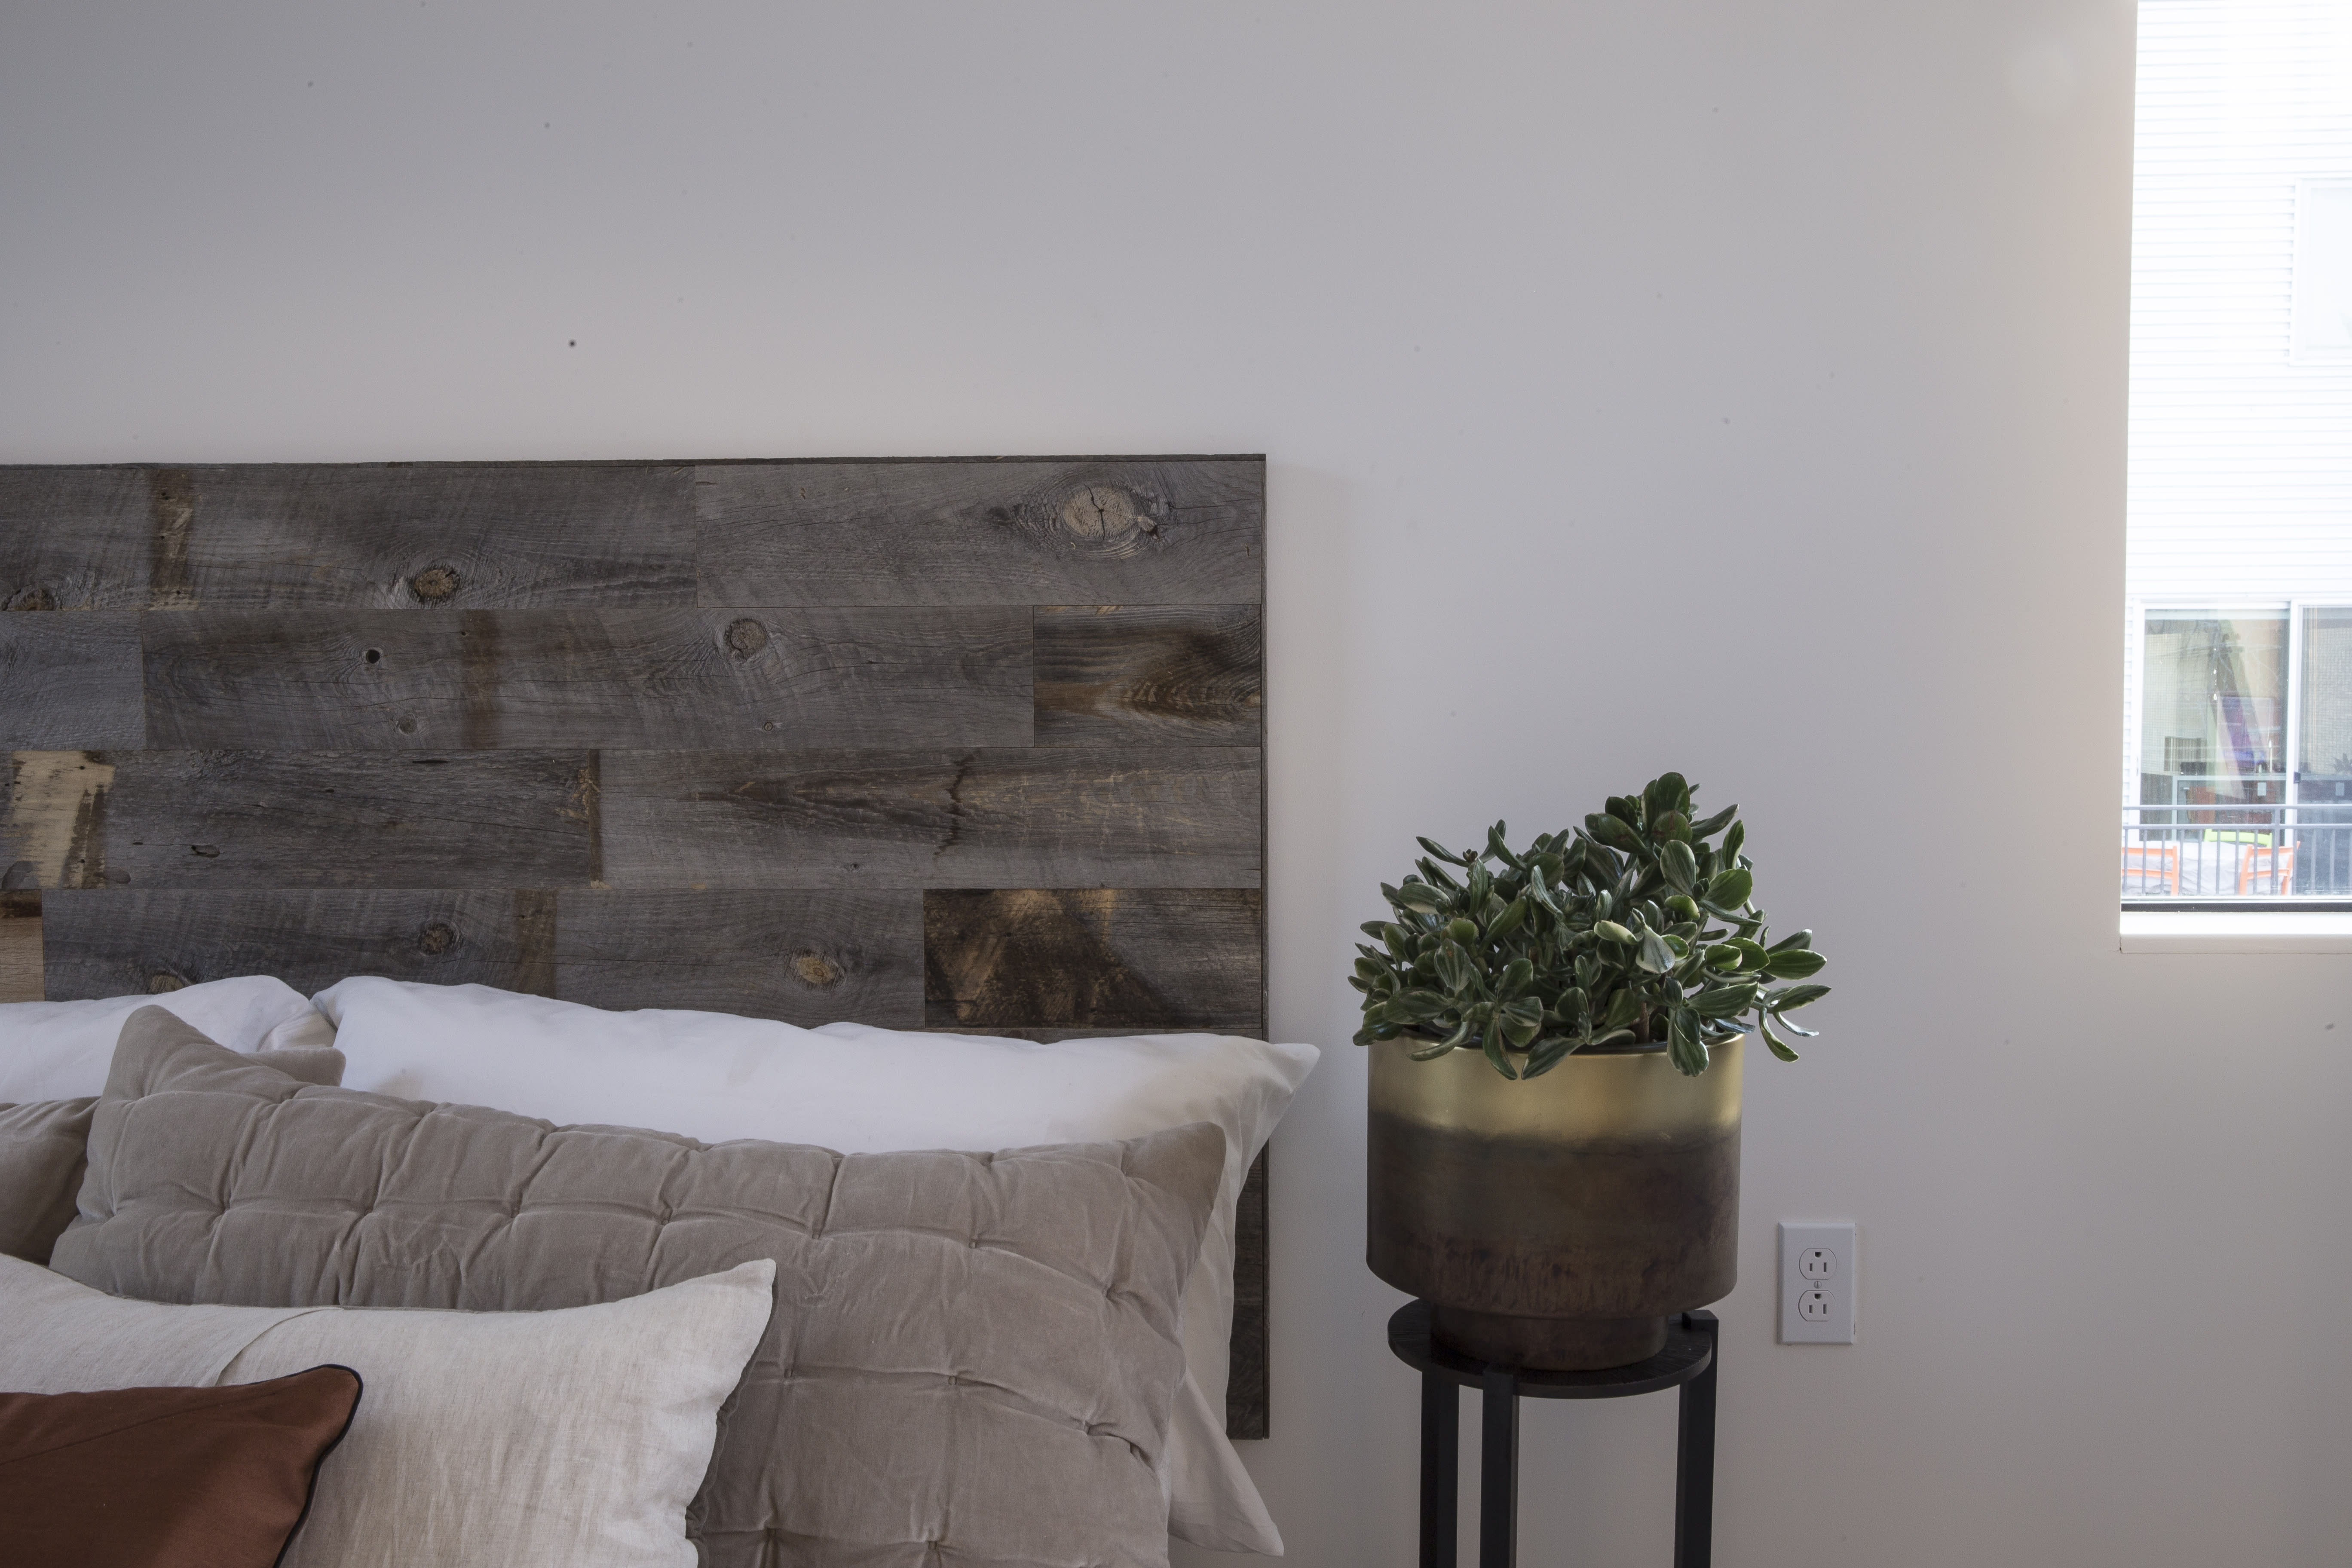 Rustic DIY Reclaimed weathered wood Stikits headboard kit assembled and attached to wall behind nicely decorated bed.